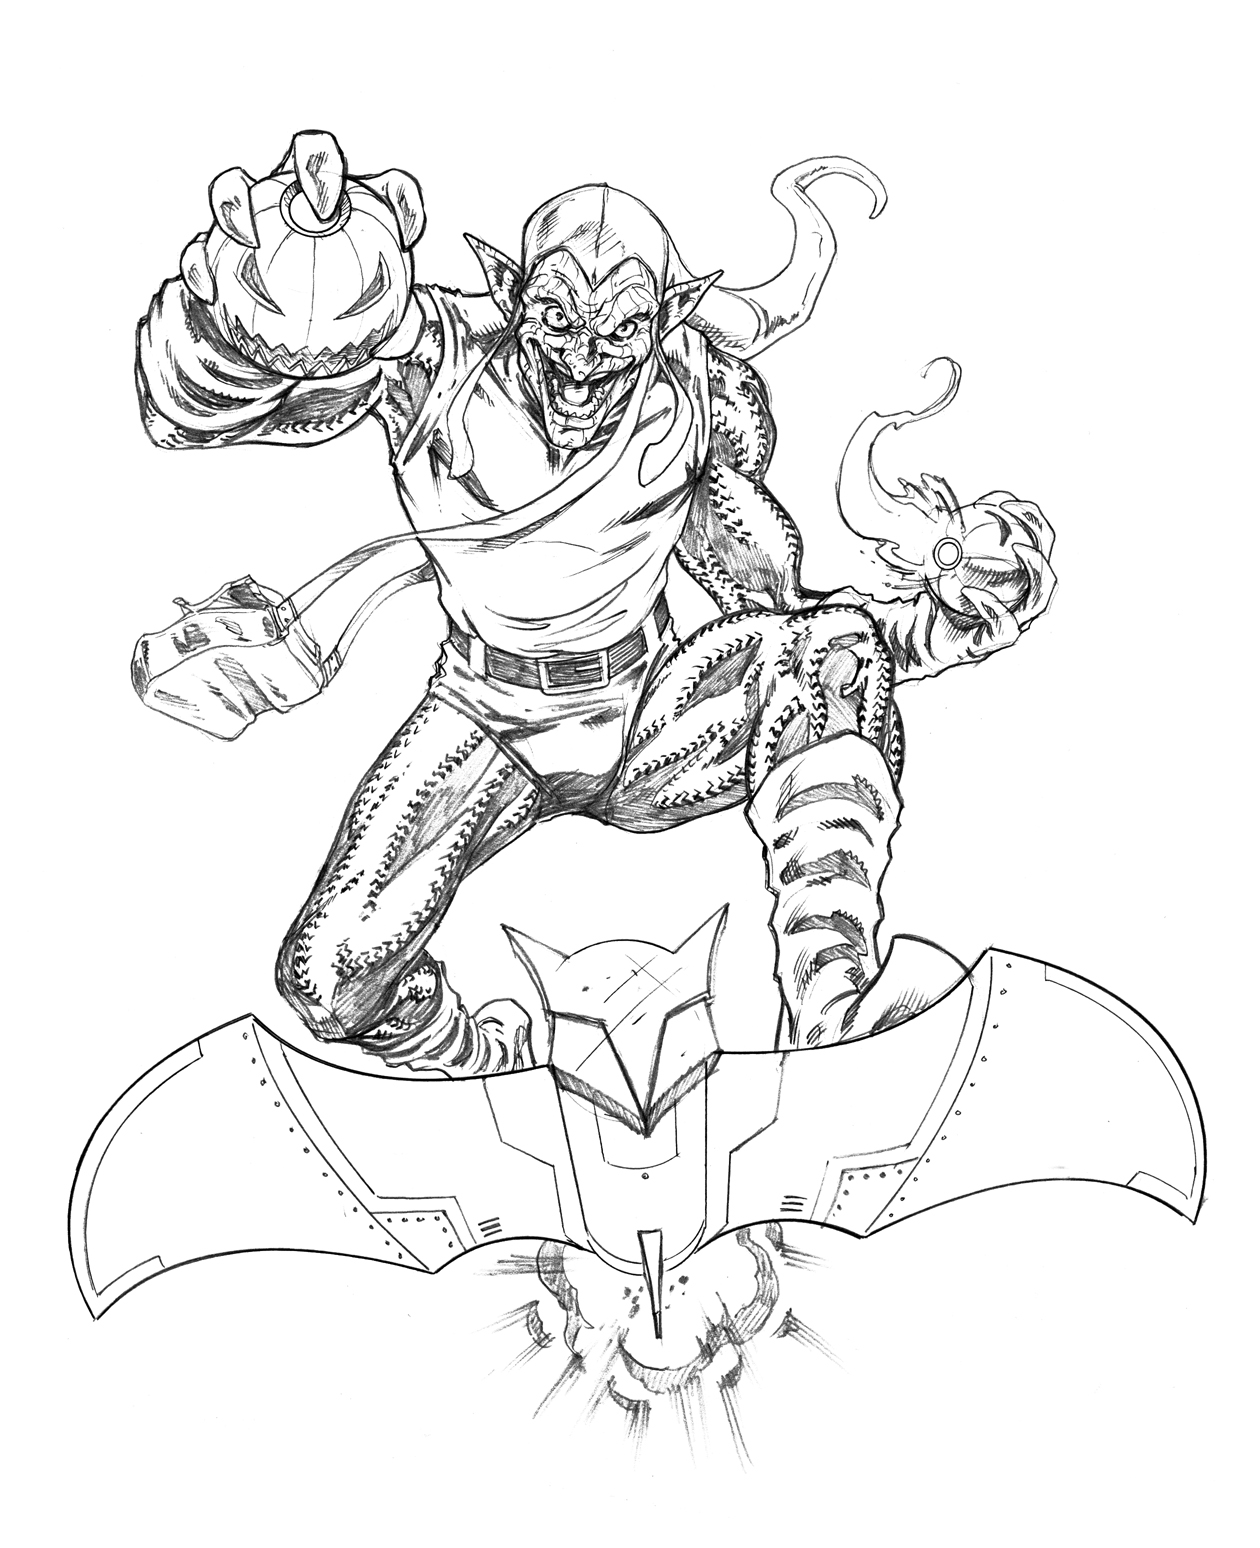 spiderman 3 coloring pages new goblin models | Green Goblin box art by sketchpimp on DeviantArt